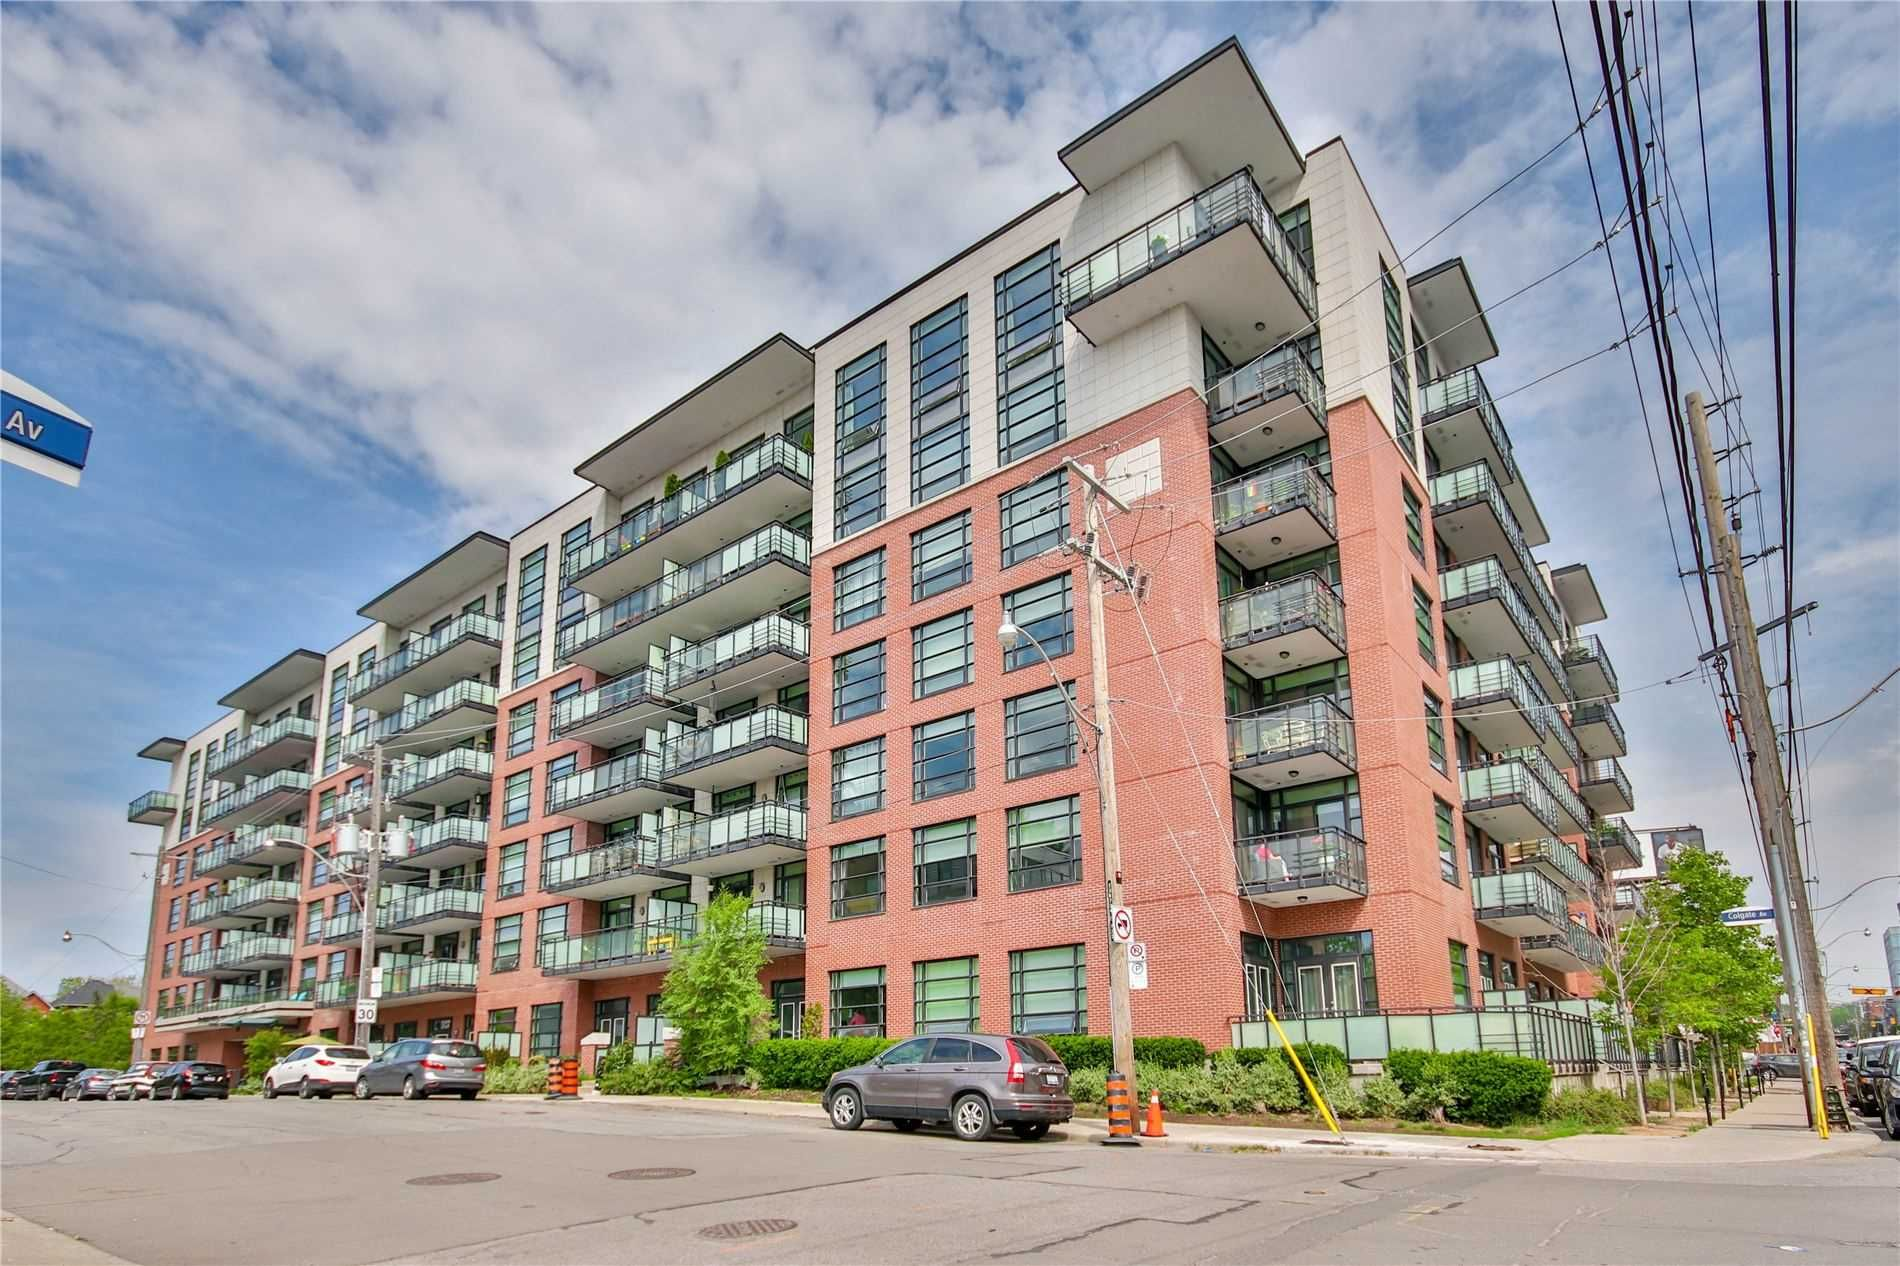 88 Colgate Ave, unit 608 for rent in Toronto - image #1